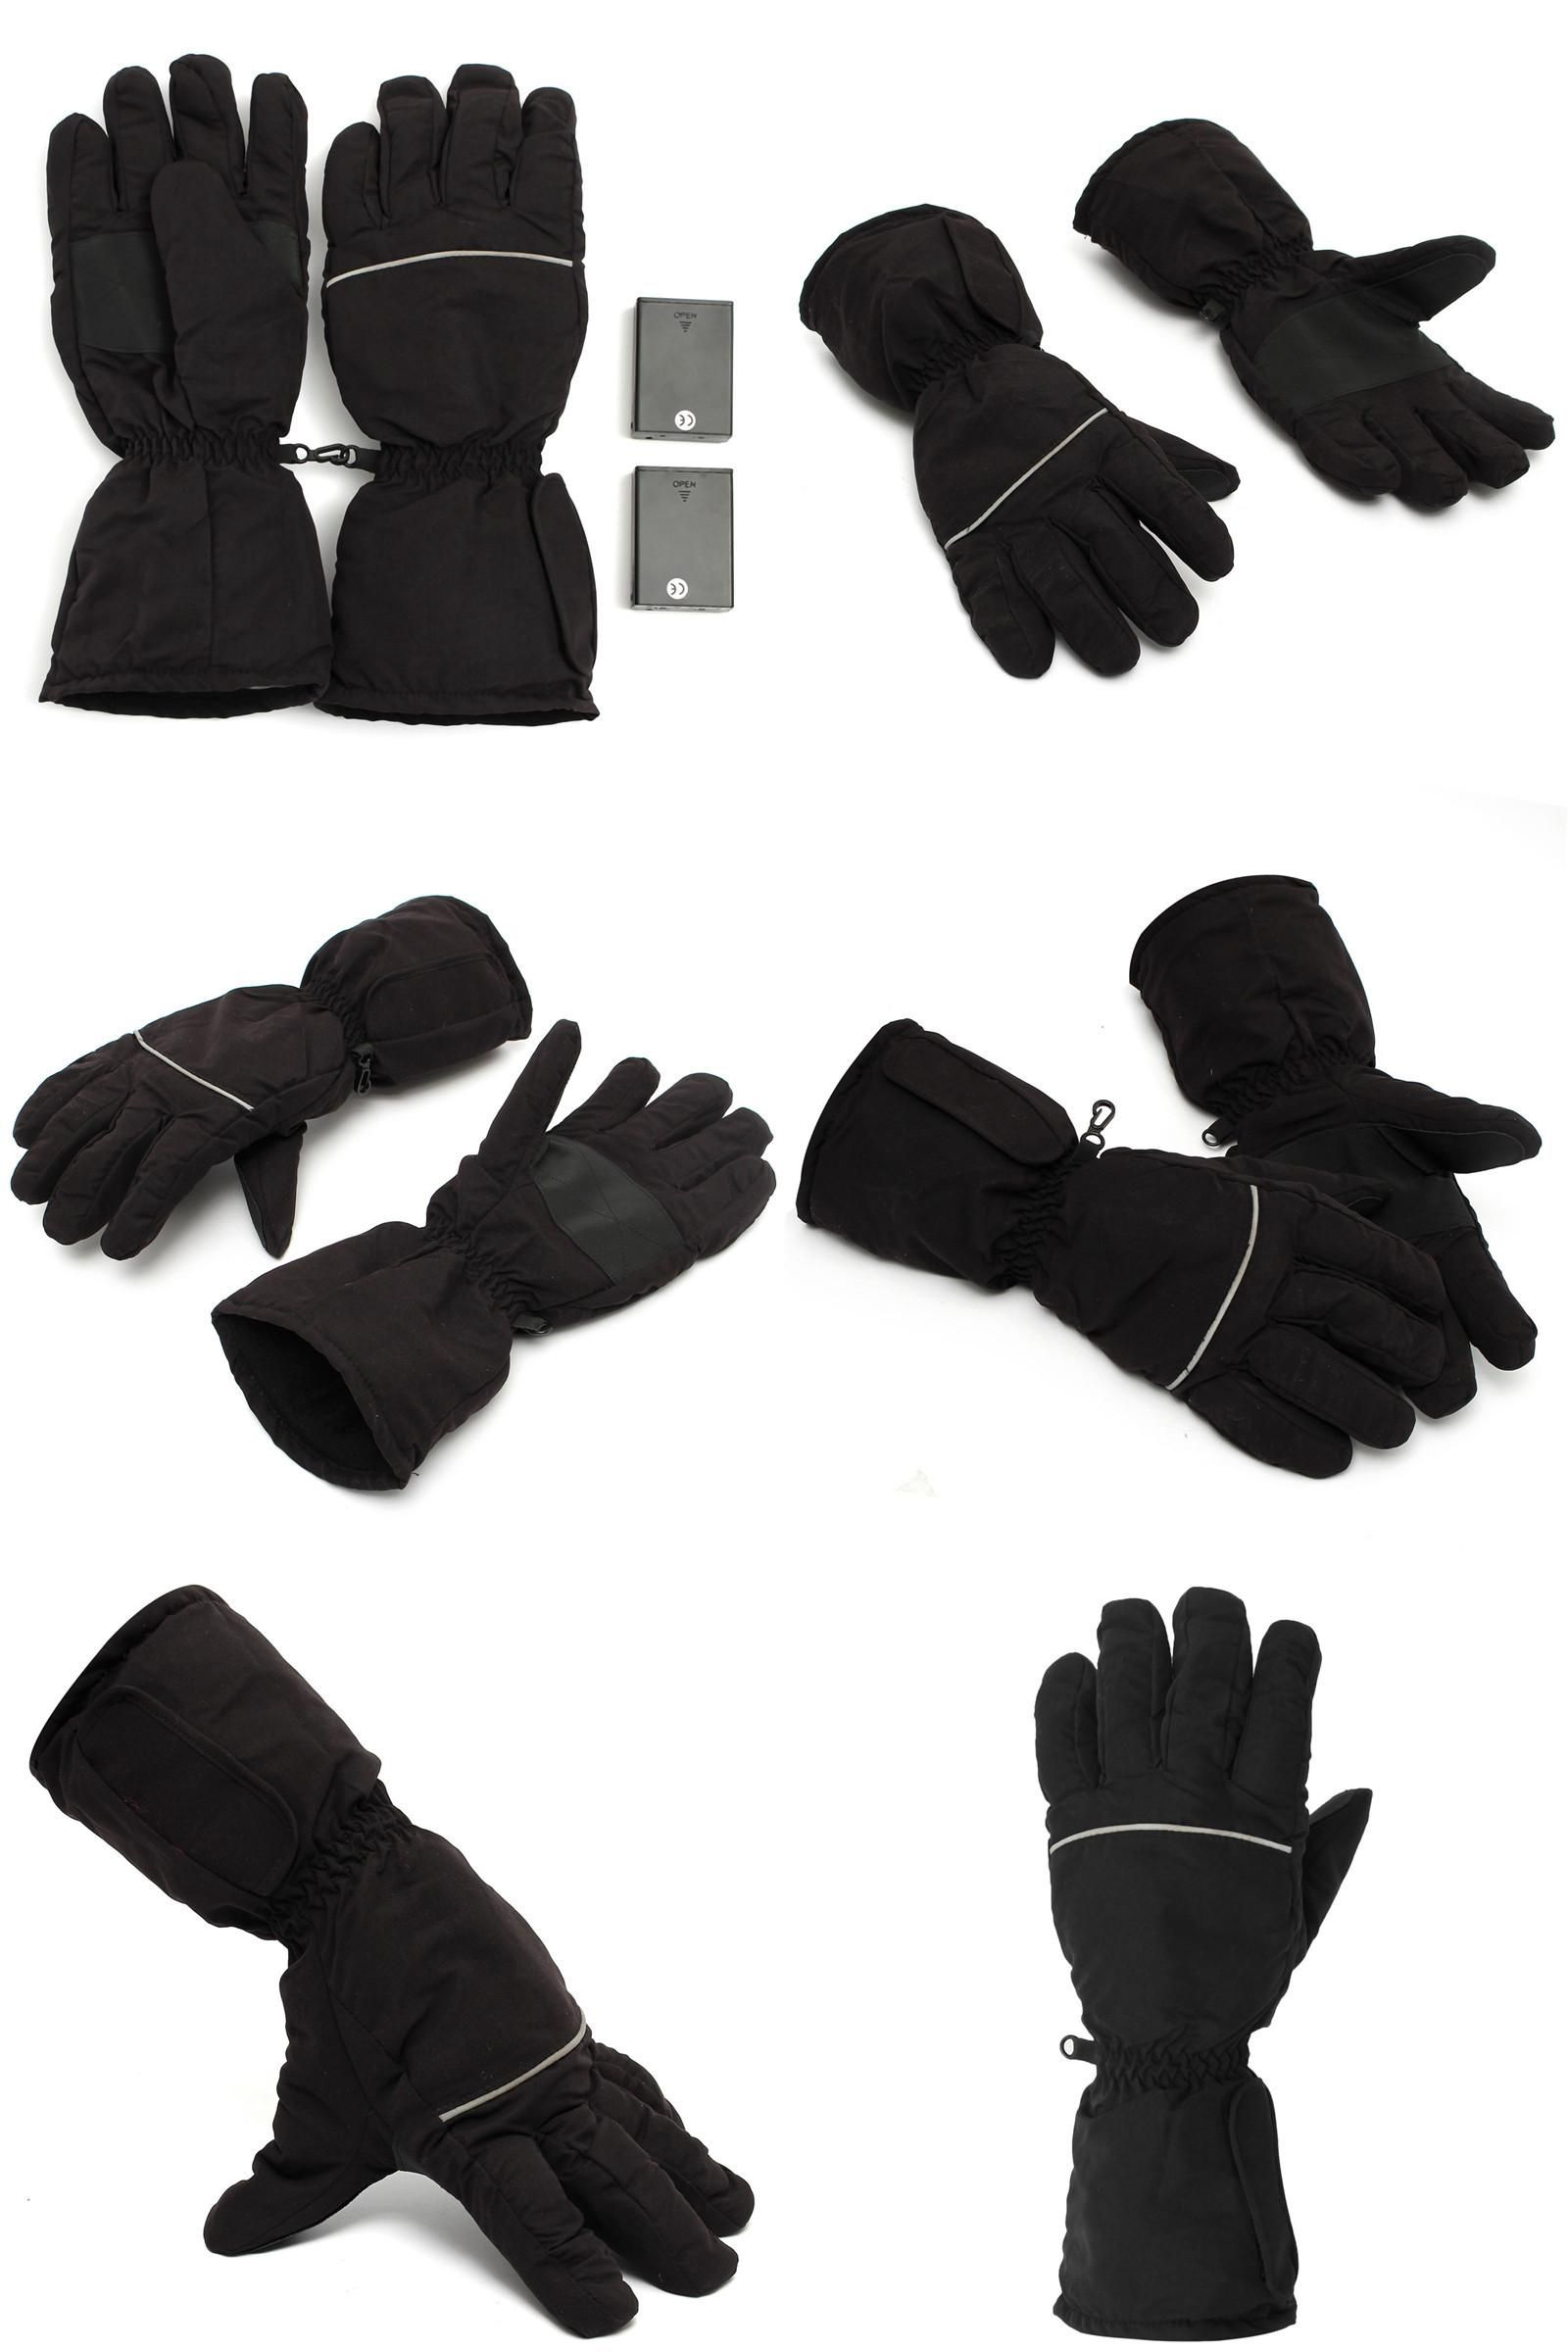 Visit To Buy New Stylish Black Electric Heating Gloves Battery Powered For Outdoor Motorcycle Hunting Winter Hand Warm Hand Warmers Hand Warmer Gloves Gloves